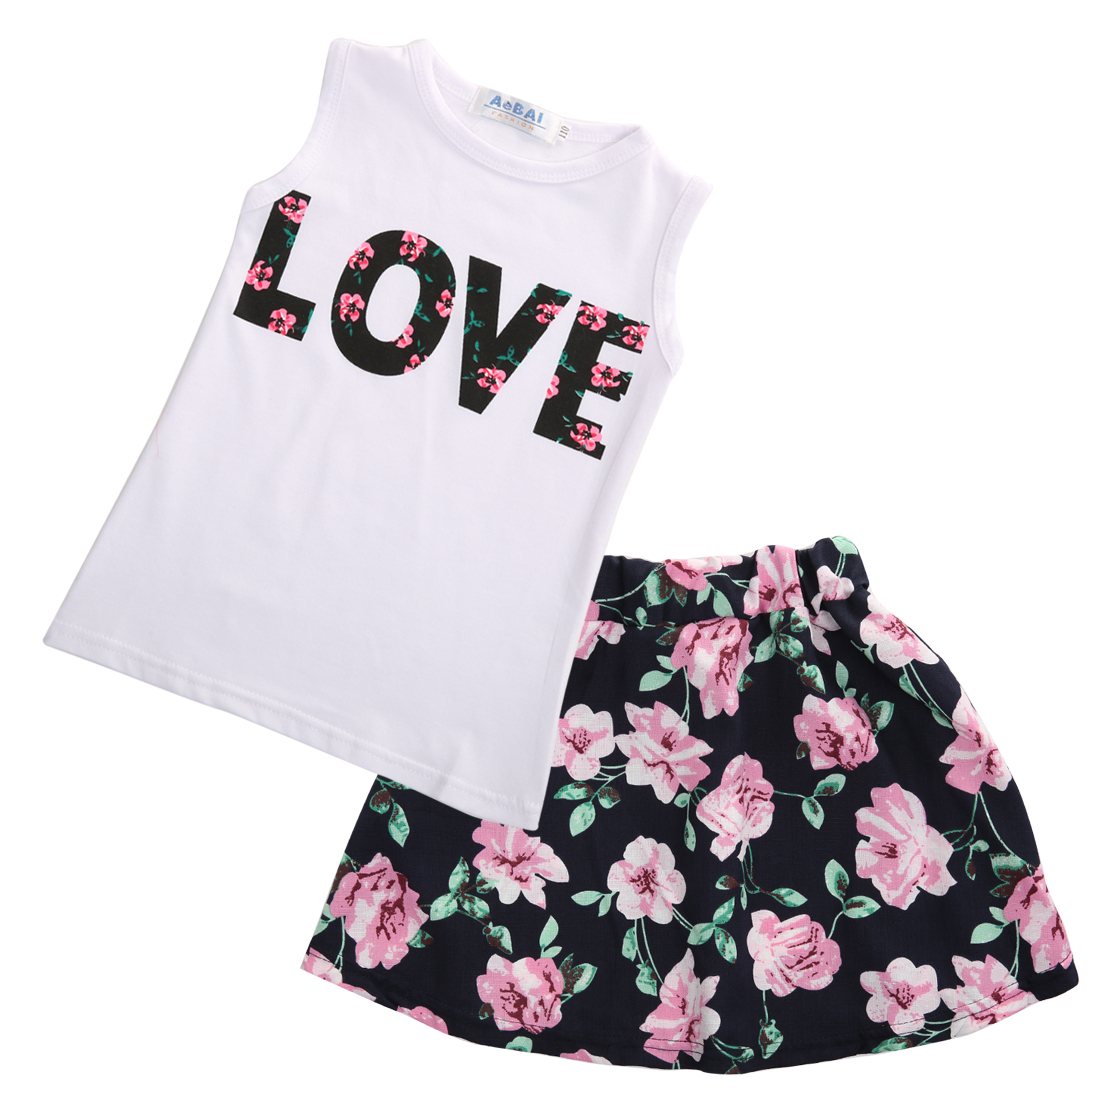 Kids Baby Girls Summer Floral Outfits Clothes Sleeveless Love T-shirt Tops+Mini Dress 2PCS Set 2-7T